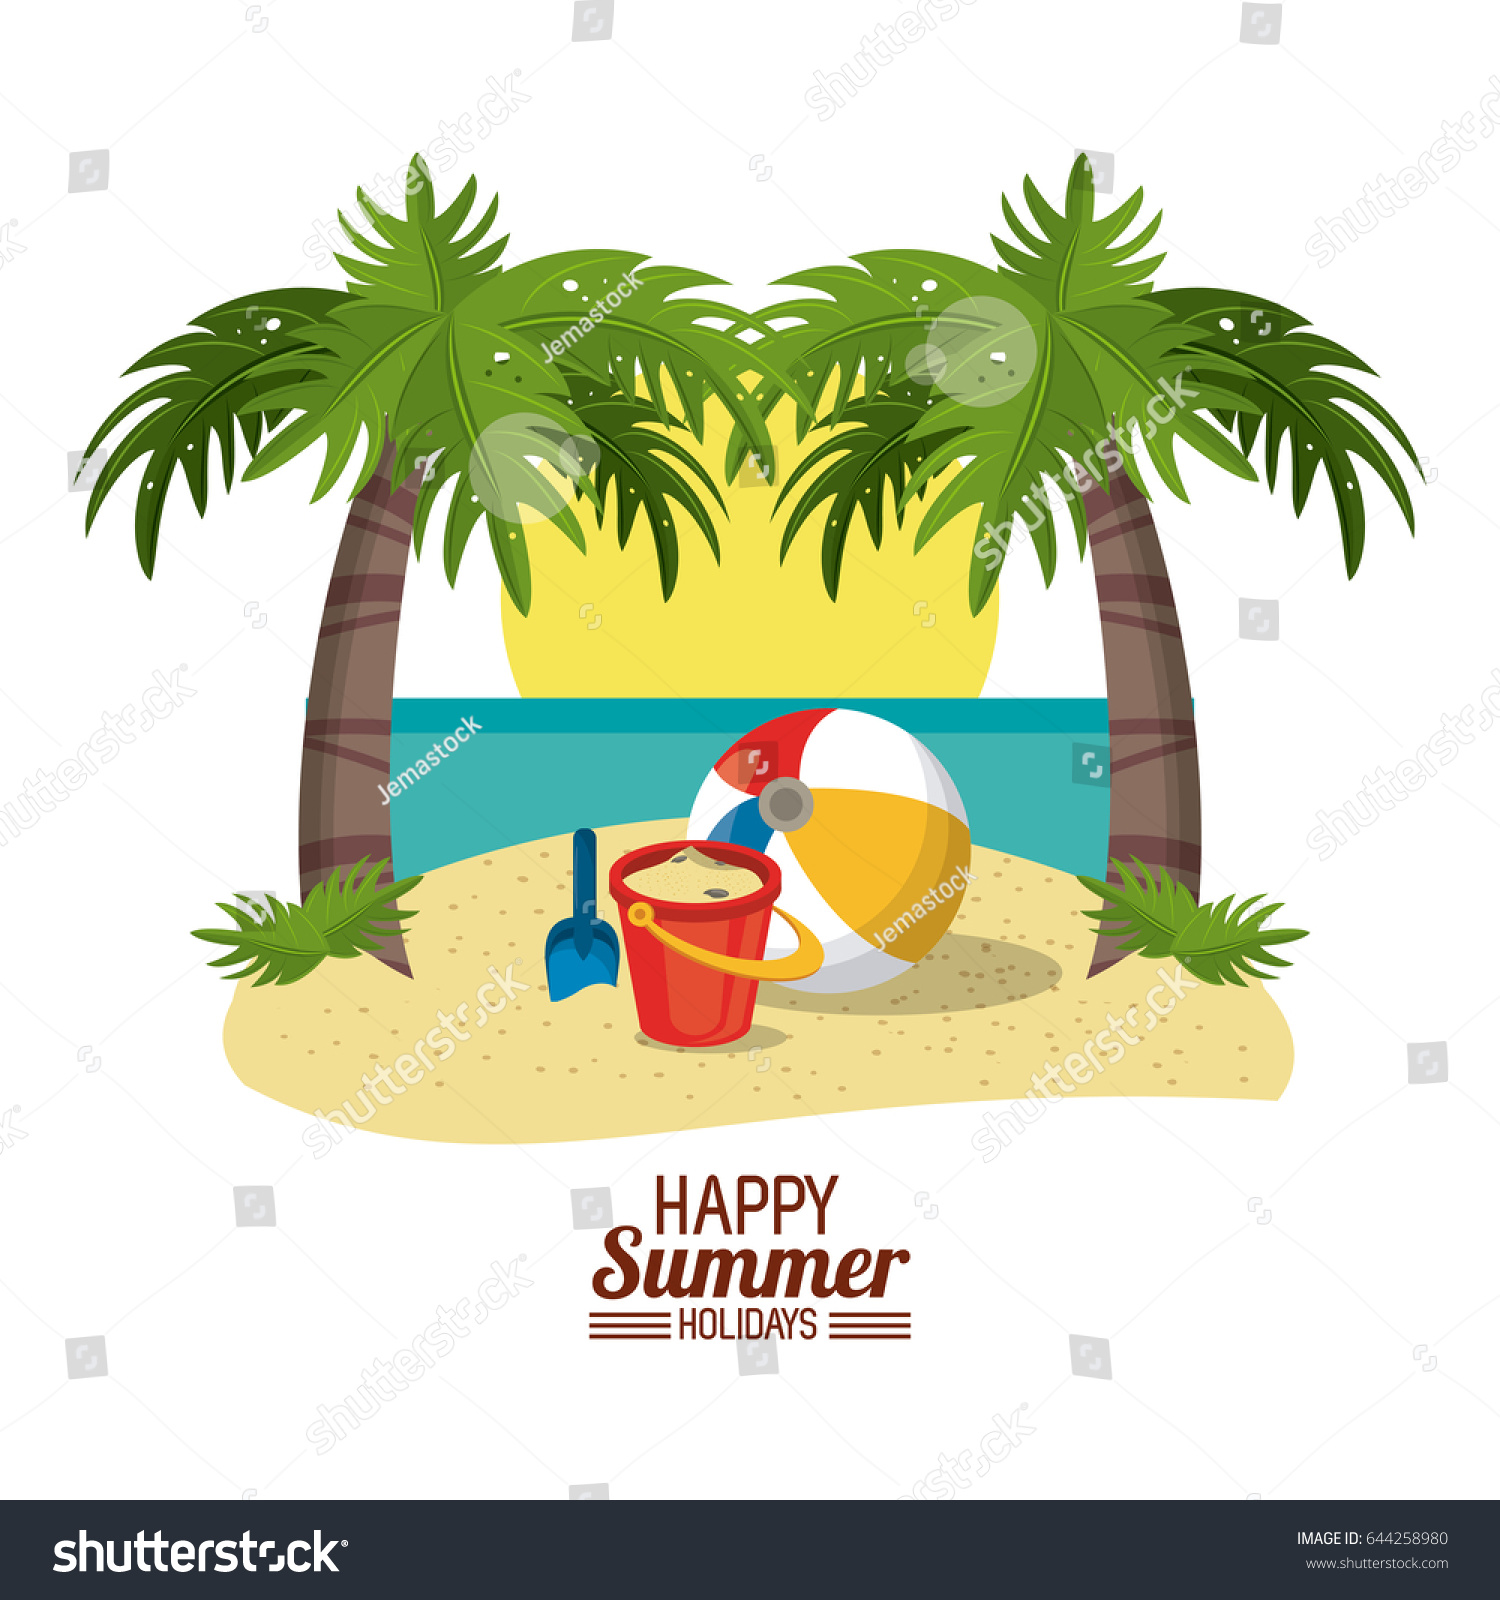 Happy Summer Holidays Poster Sand Bucket Ball Shovel Sun Palm Beach